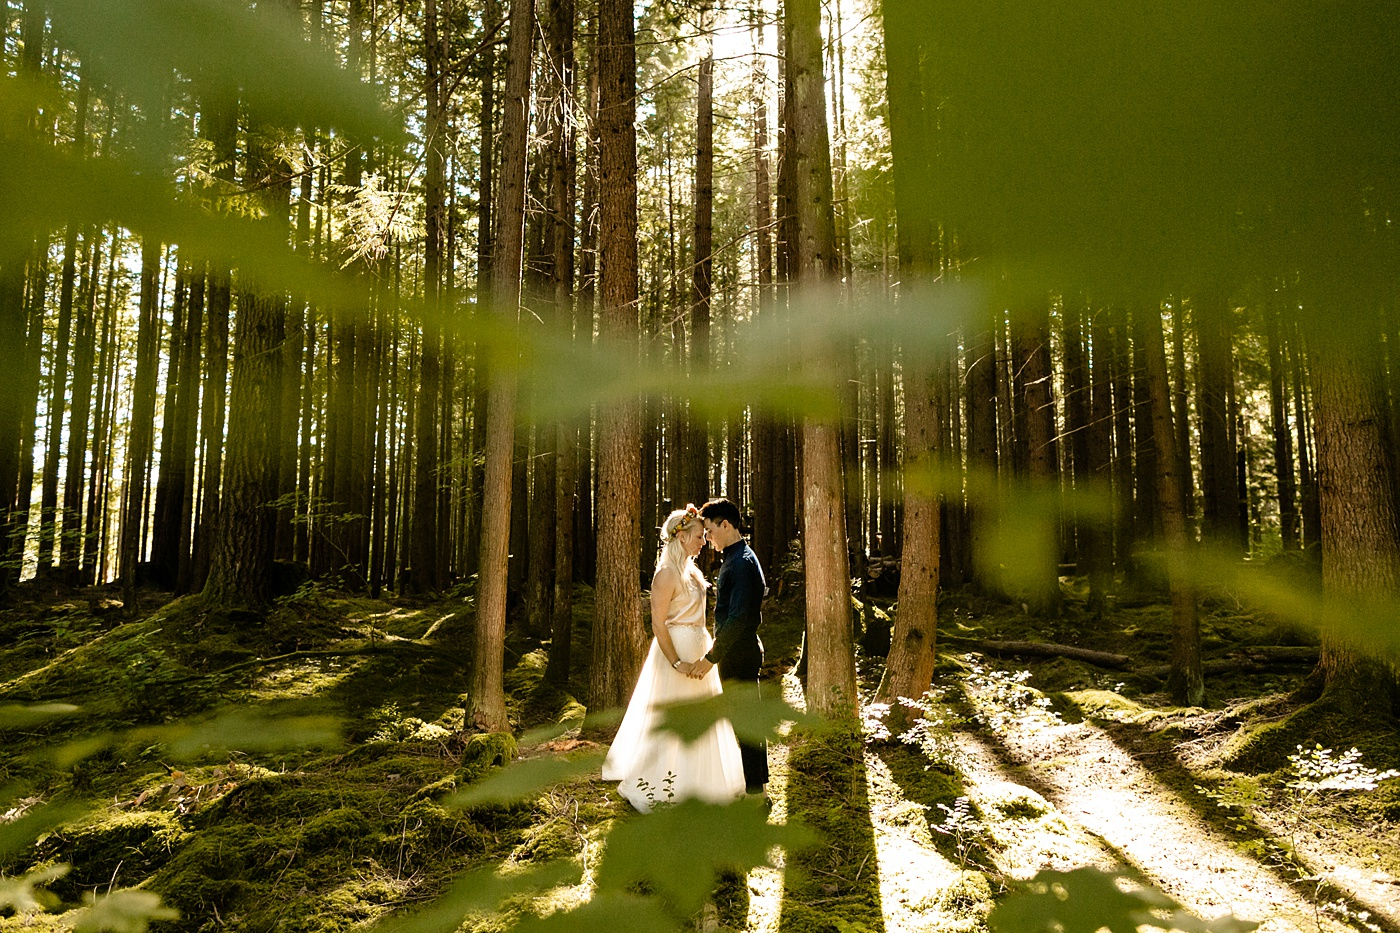 Emerald Forest Engagement Photographer Treehouse Wedding Venue PNW TMinspired Photography